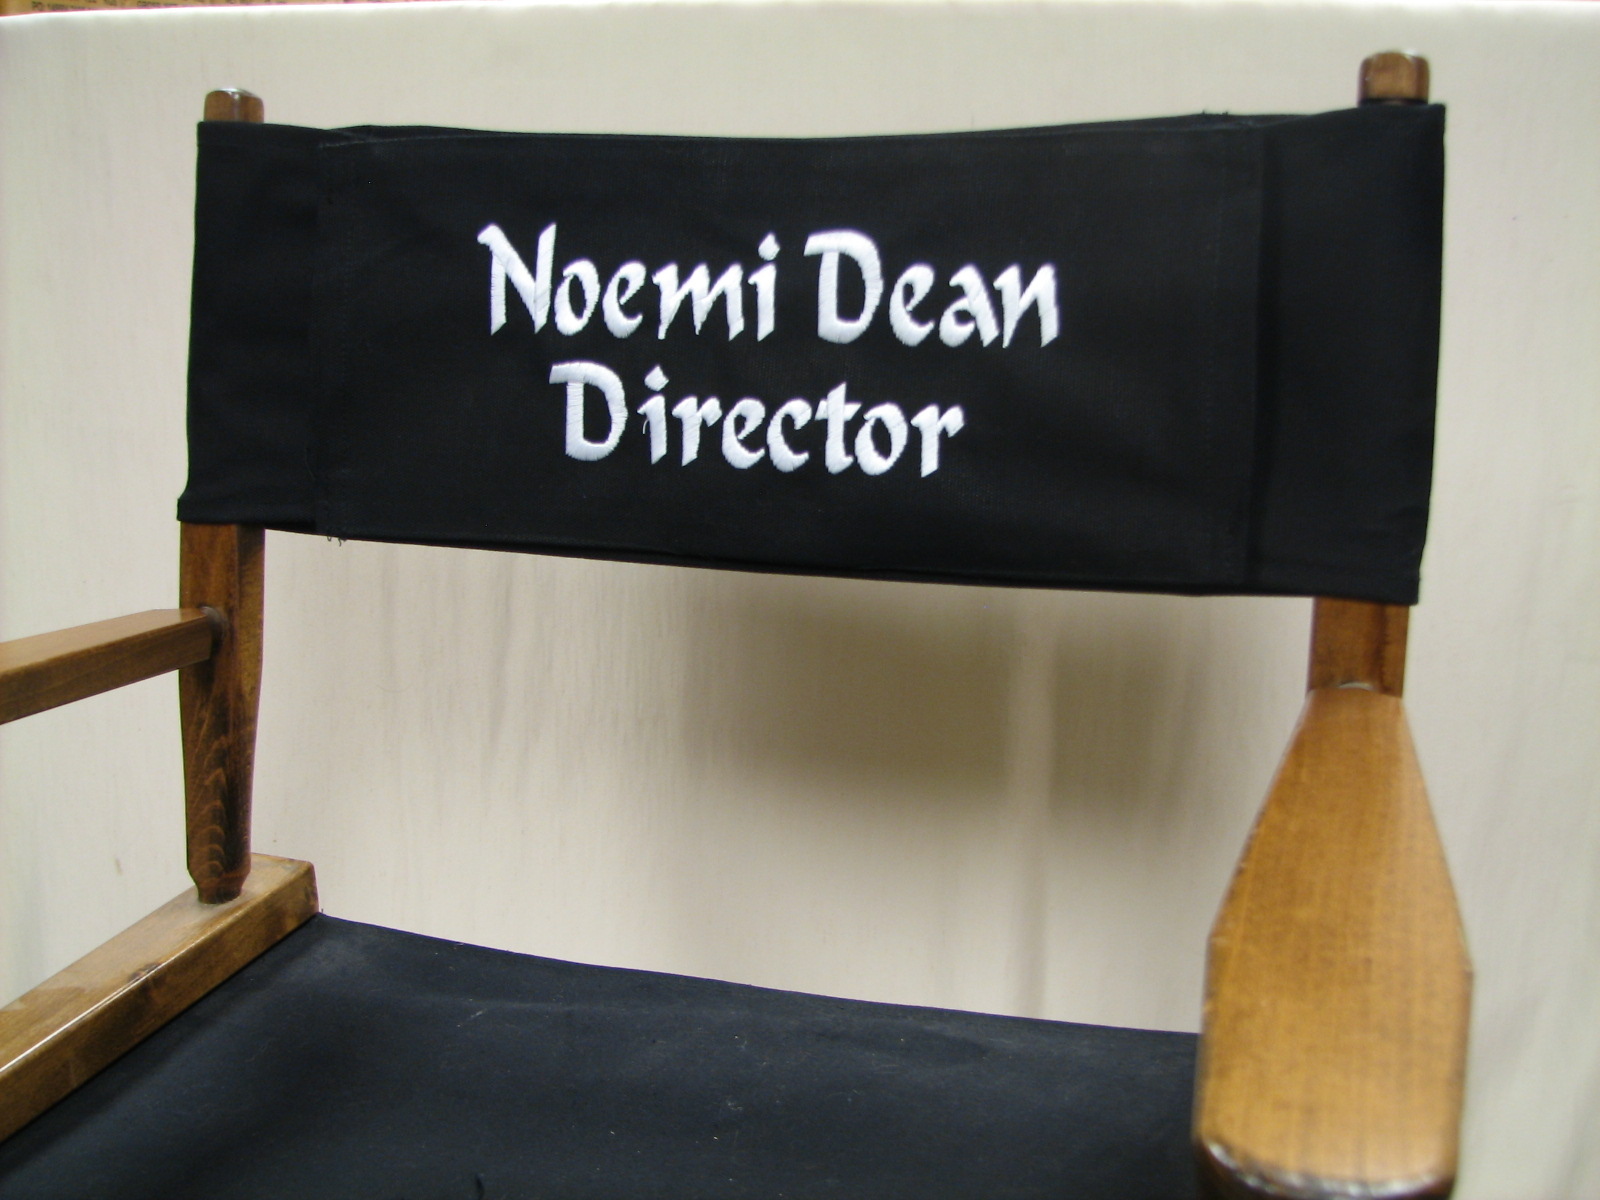 EMBROIDERED Replacement Canvas For Directors Chair (ROUND STICK) - Personalized Directors Chair ...